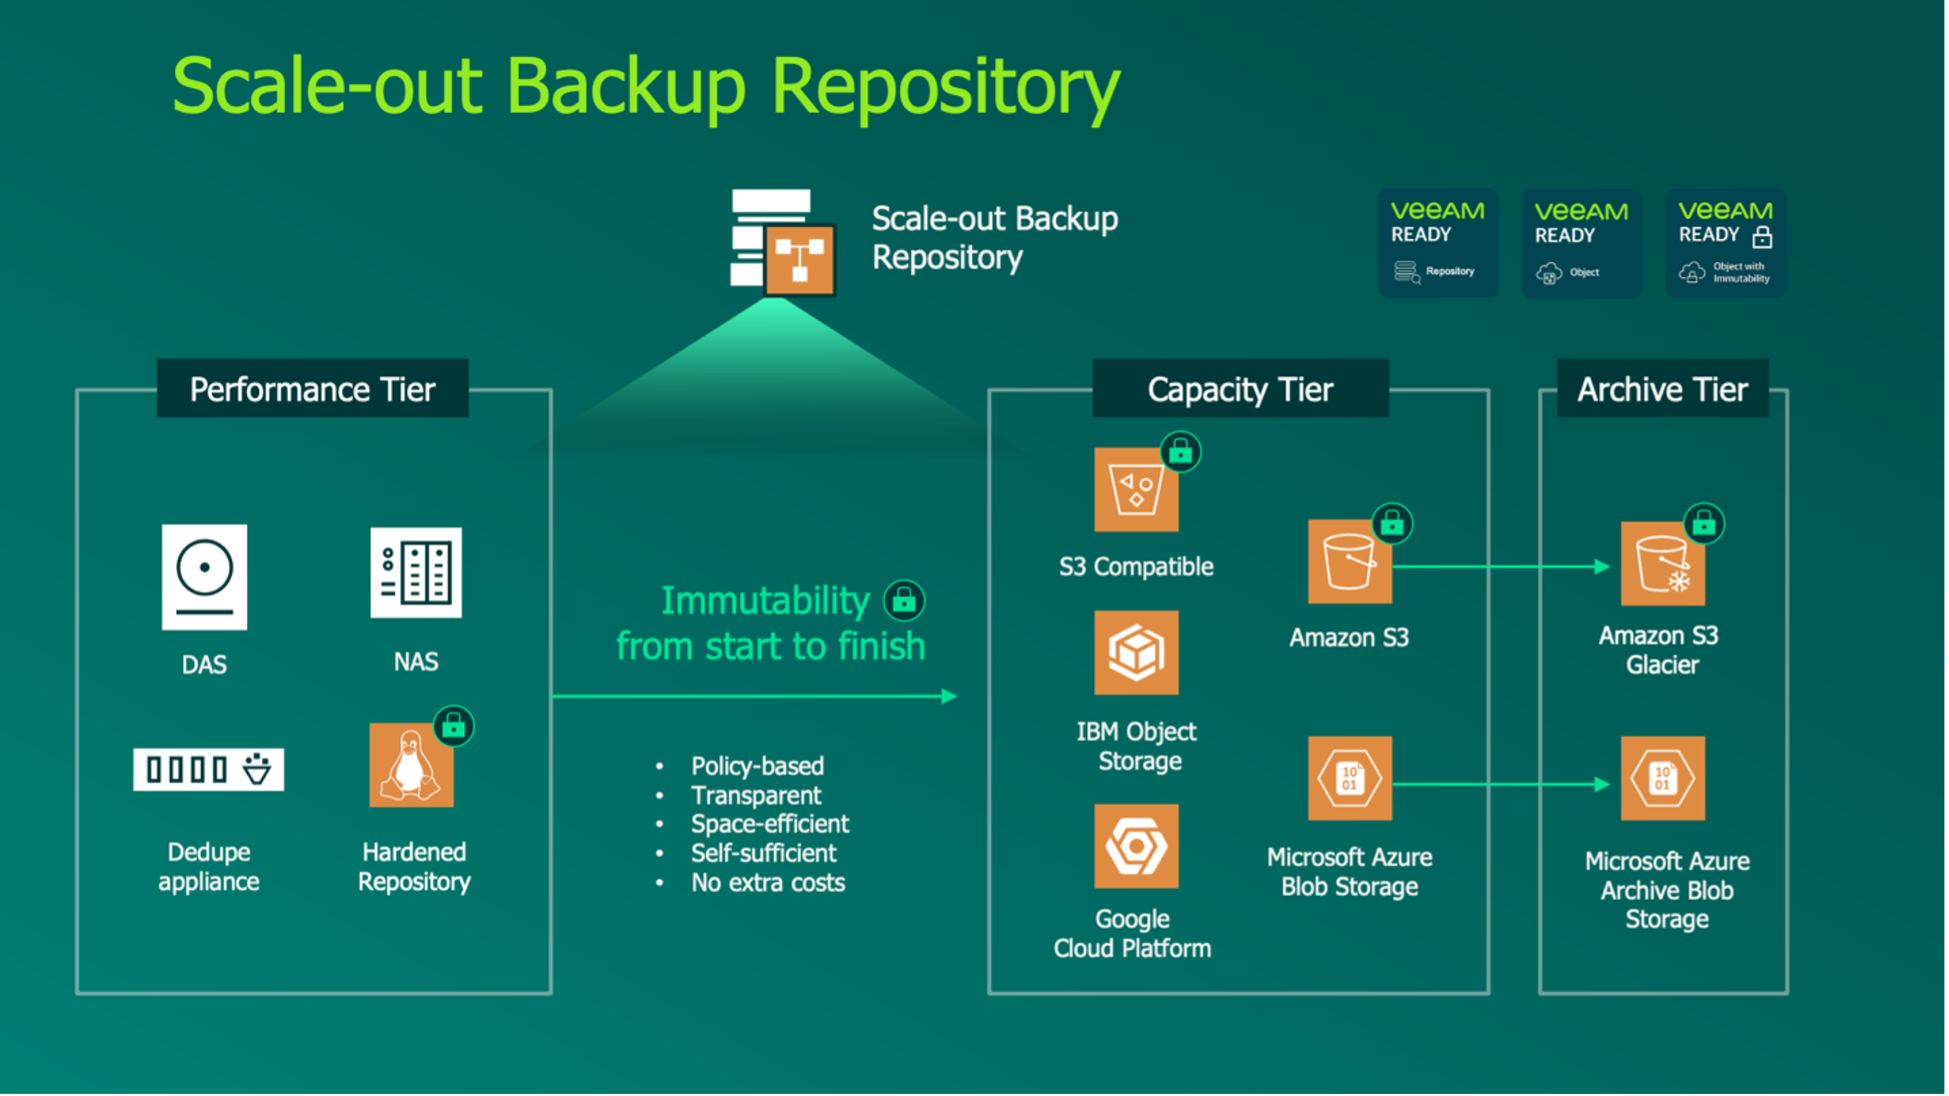 How to work with a SOBR with Veeam Back-up & Replication